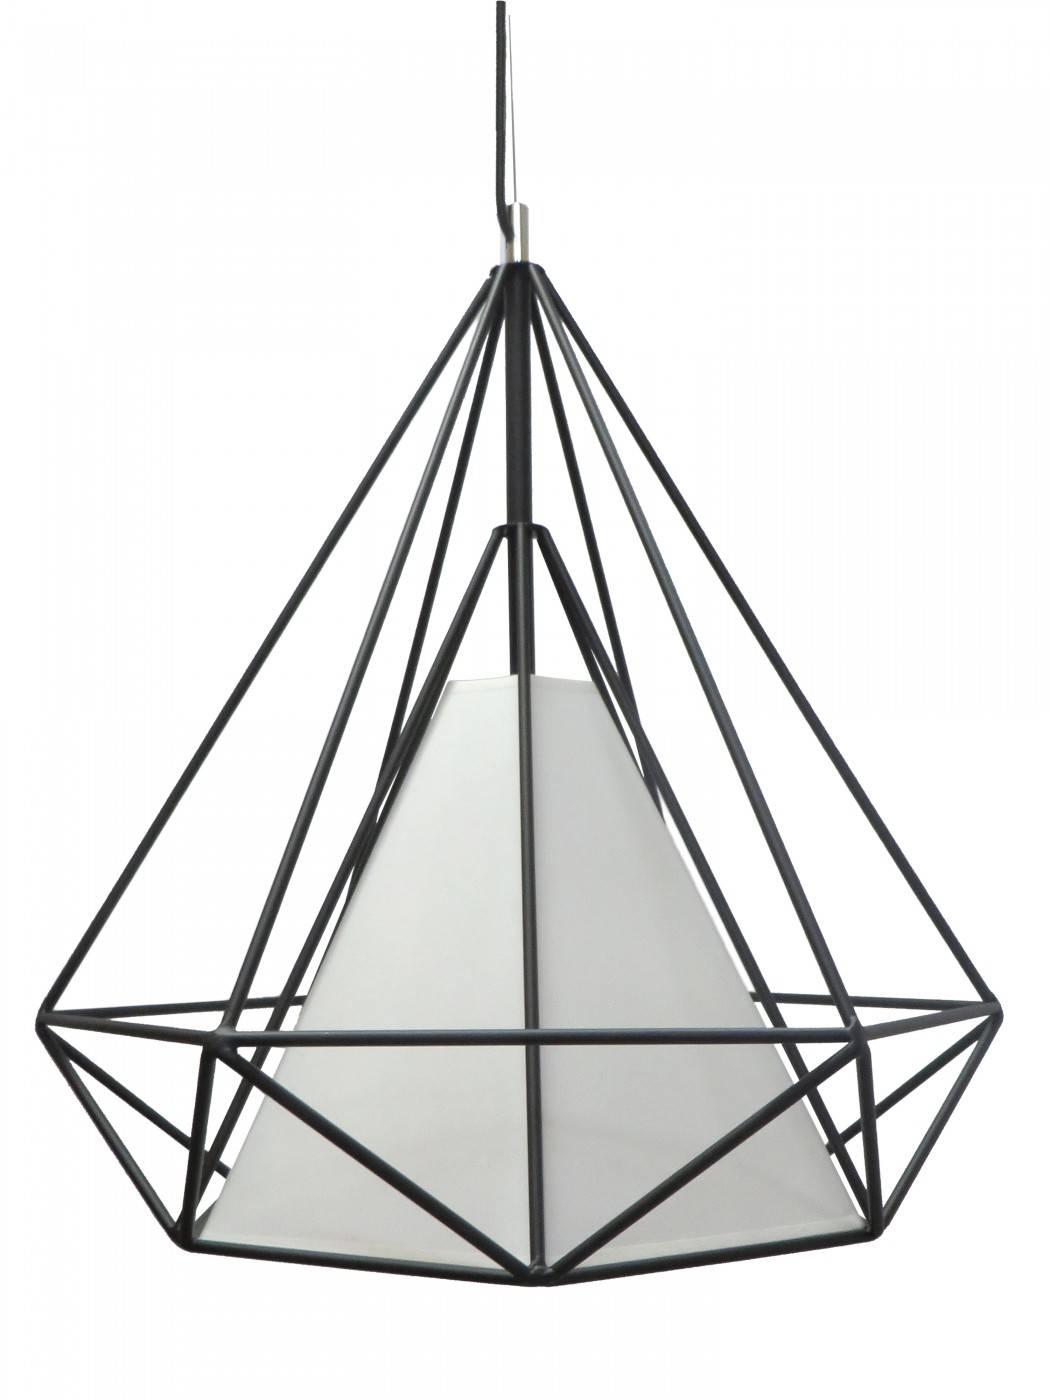 Delight Shade pertaining to Himmeli Pendant Lights (Image 5 of 15)